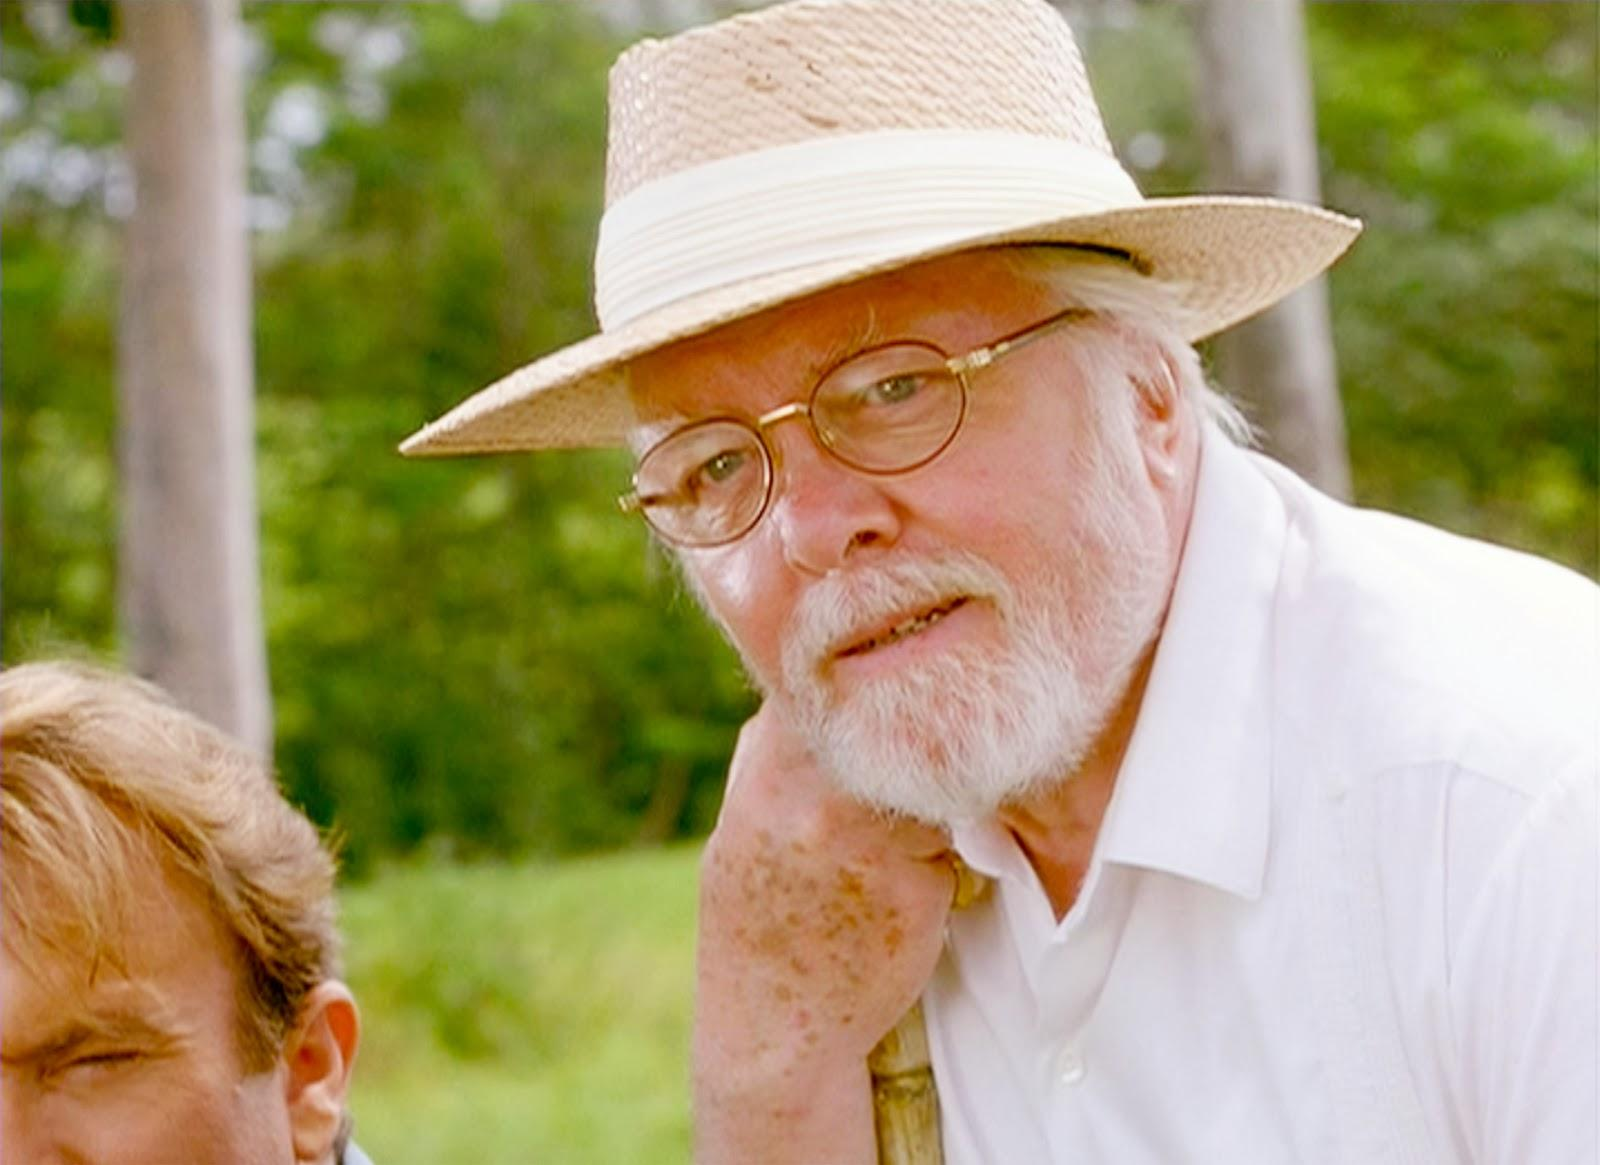 Oscar-winning director and actor Richard Attenborough has died at age 90